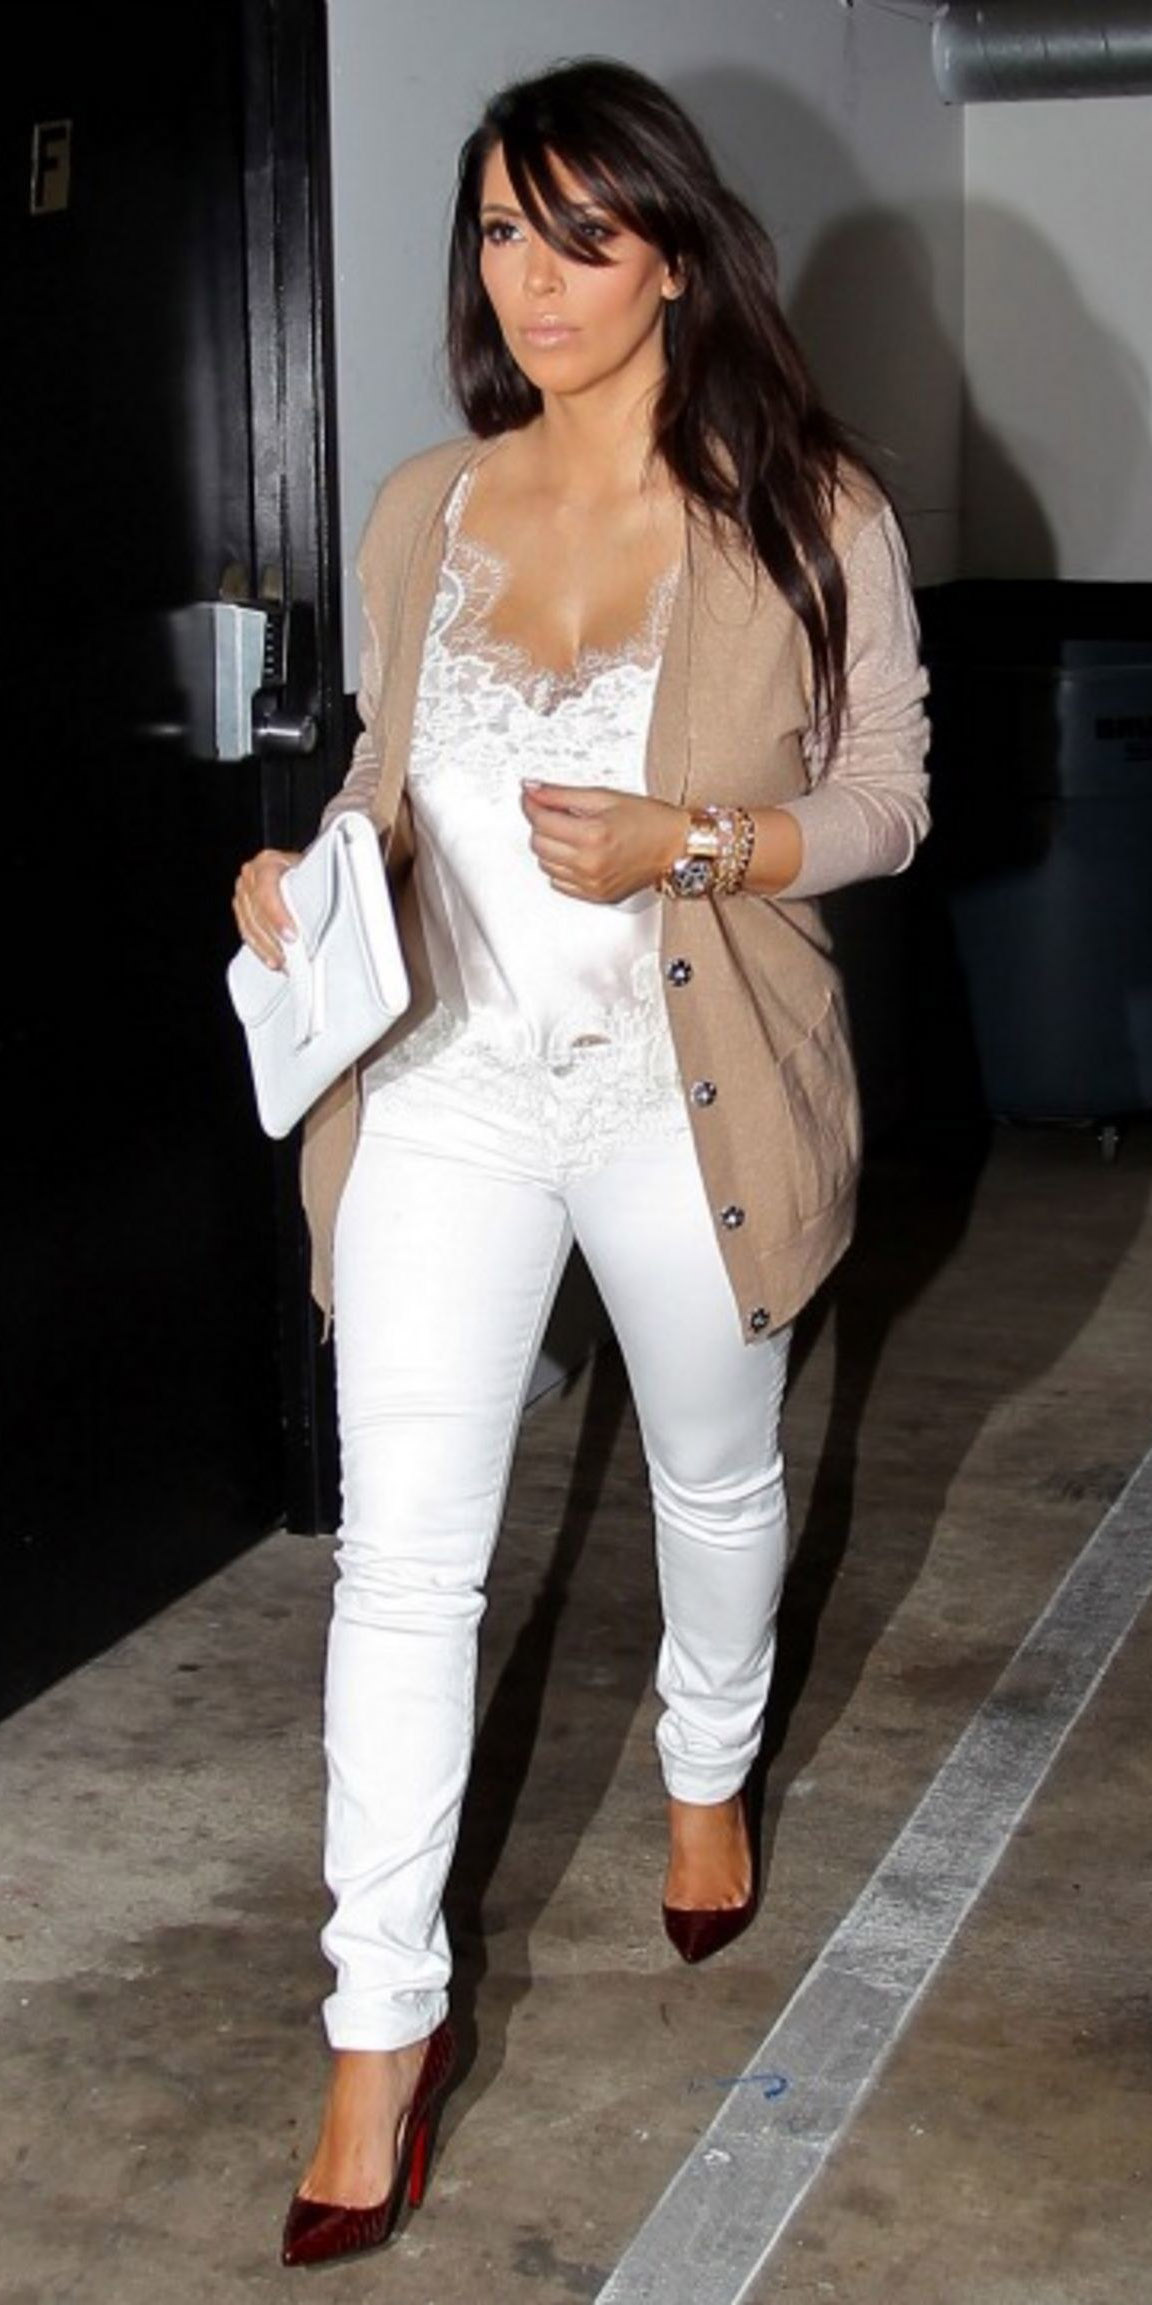 white-skinny-jeans-red-shoe-pumps-tan-cardiganl-white-bag-clutch-kimkardashian-white-cami-spring-summer-brun-lunch.jpg